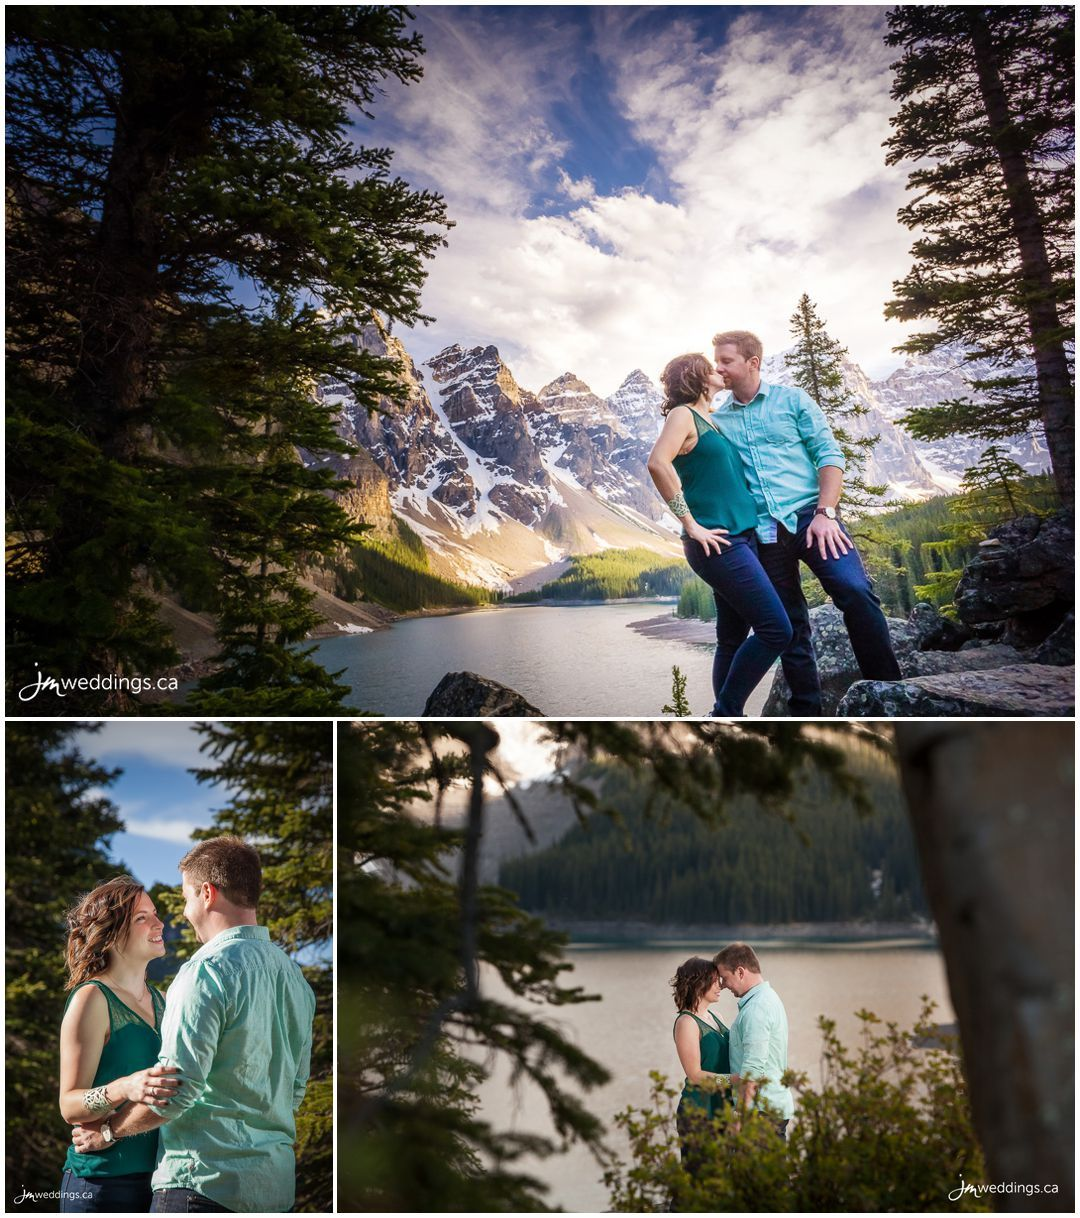 One of our favourite photos from Taryn and Adam's #Engagement Session. #EngagementPhotos by JM Photography © 2016 http://www.JMweddings.ca #EngagementPhotography #JMweddings #JMphotography 160604_558-Calgary-Engagement-Photographers-Moraine-Lake-Banff-JM_Photography